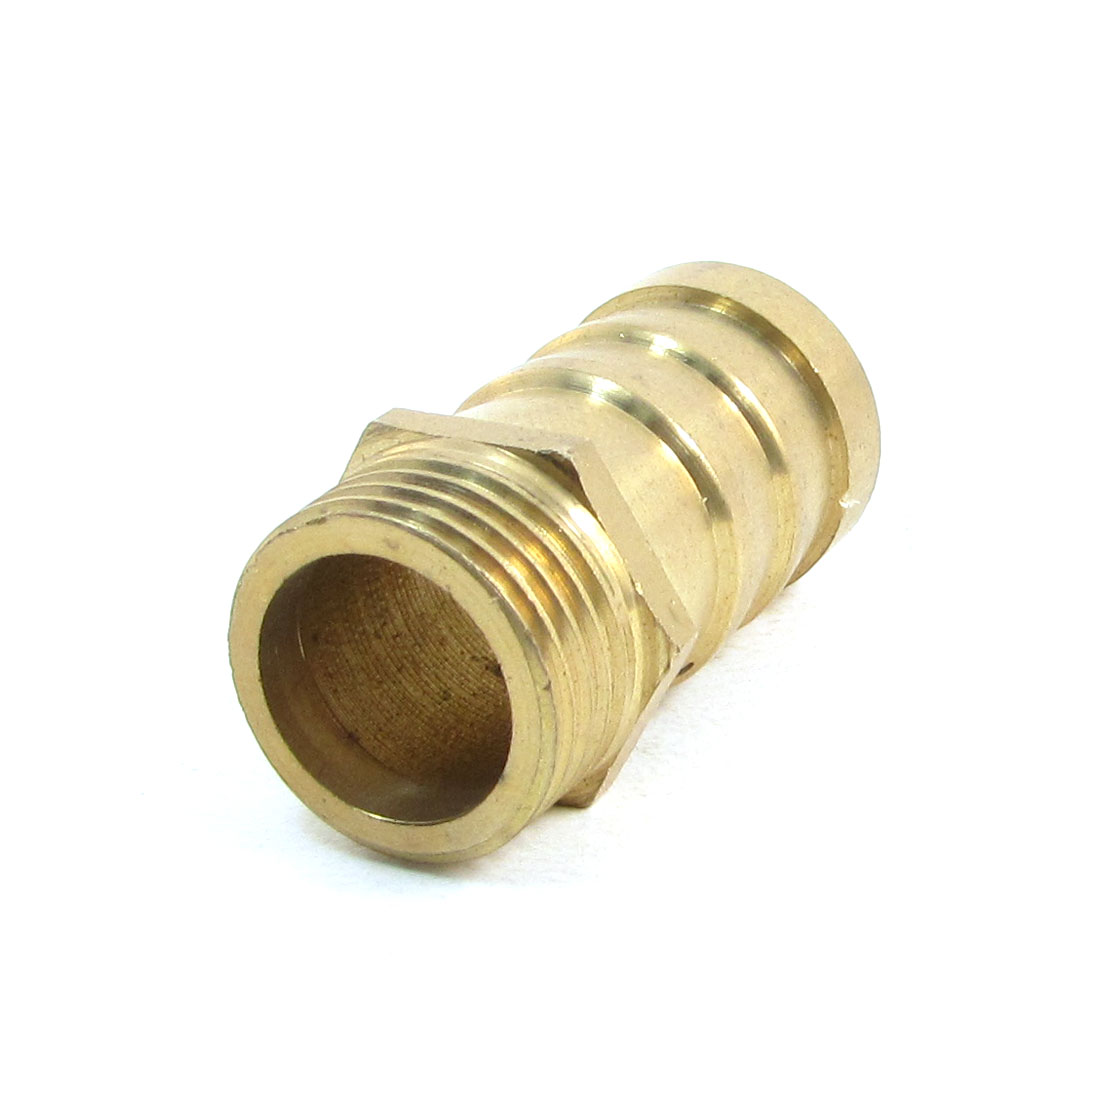 20mm Male Thread Brass Pipe Quick Fitting Mold Hose Barb End